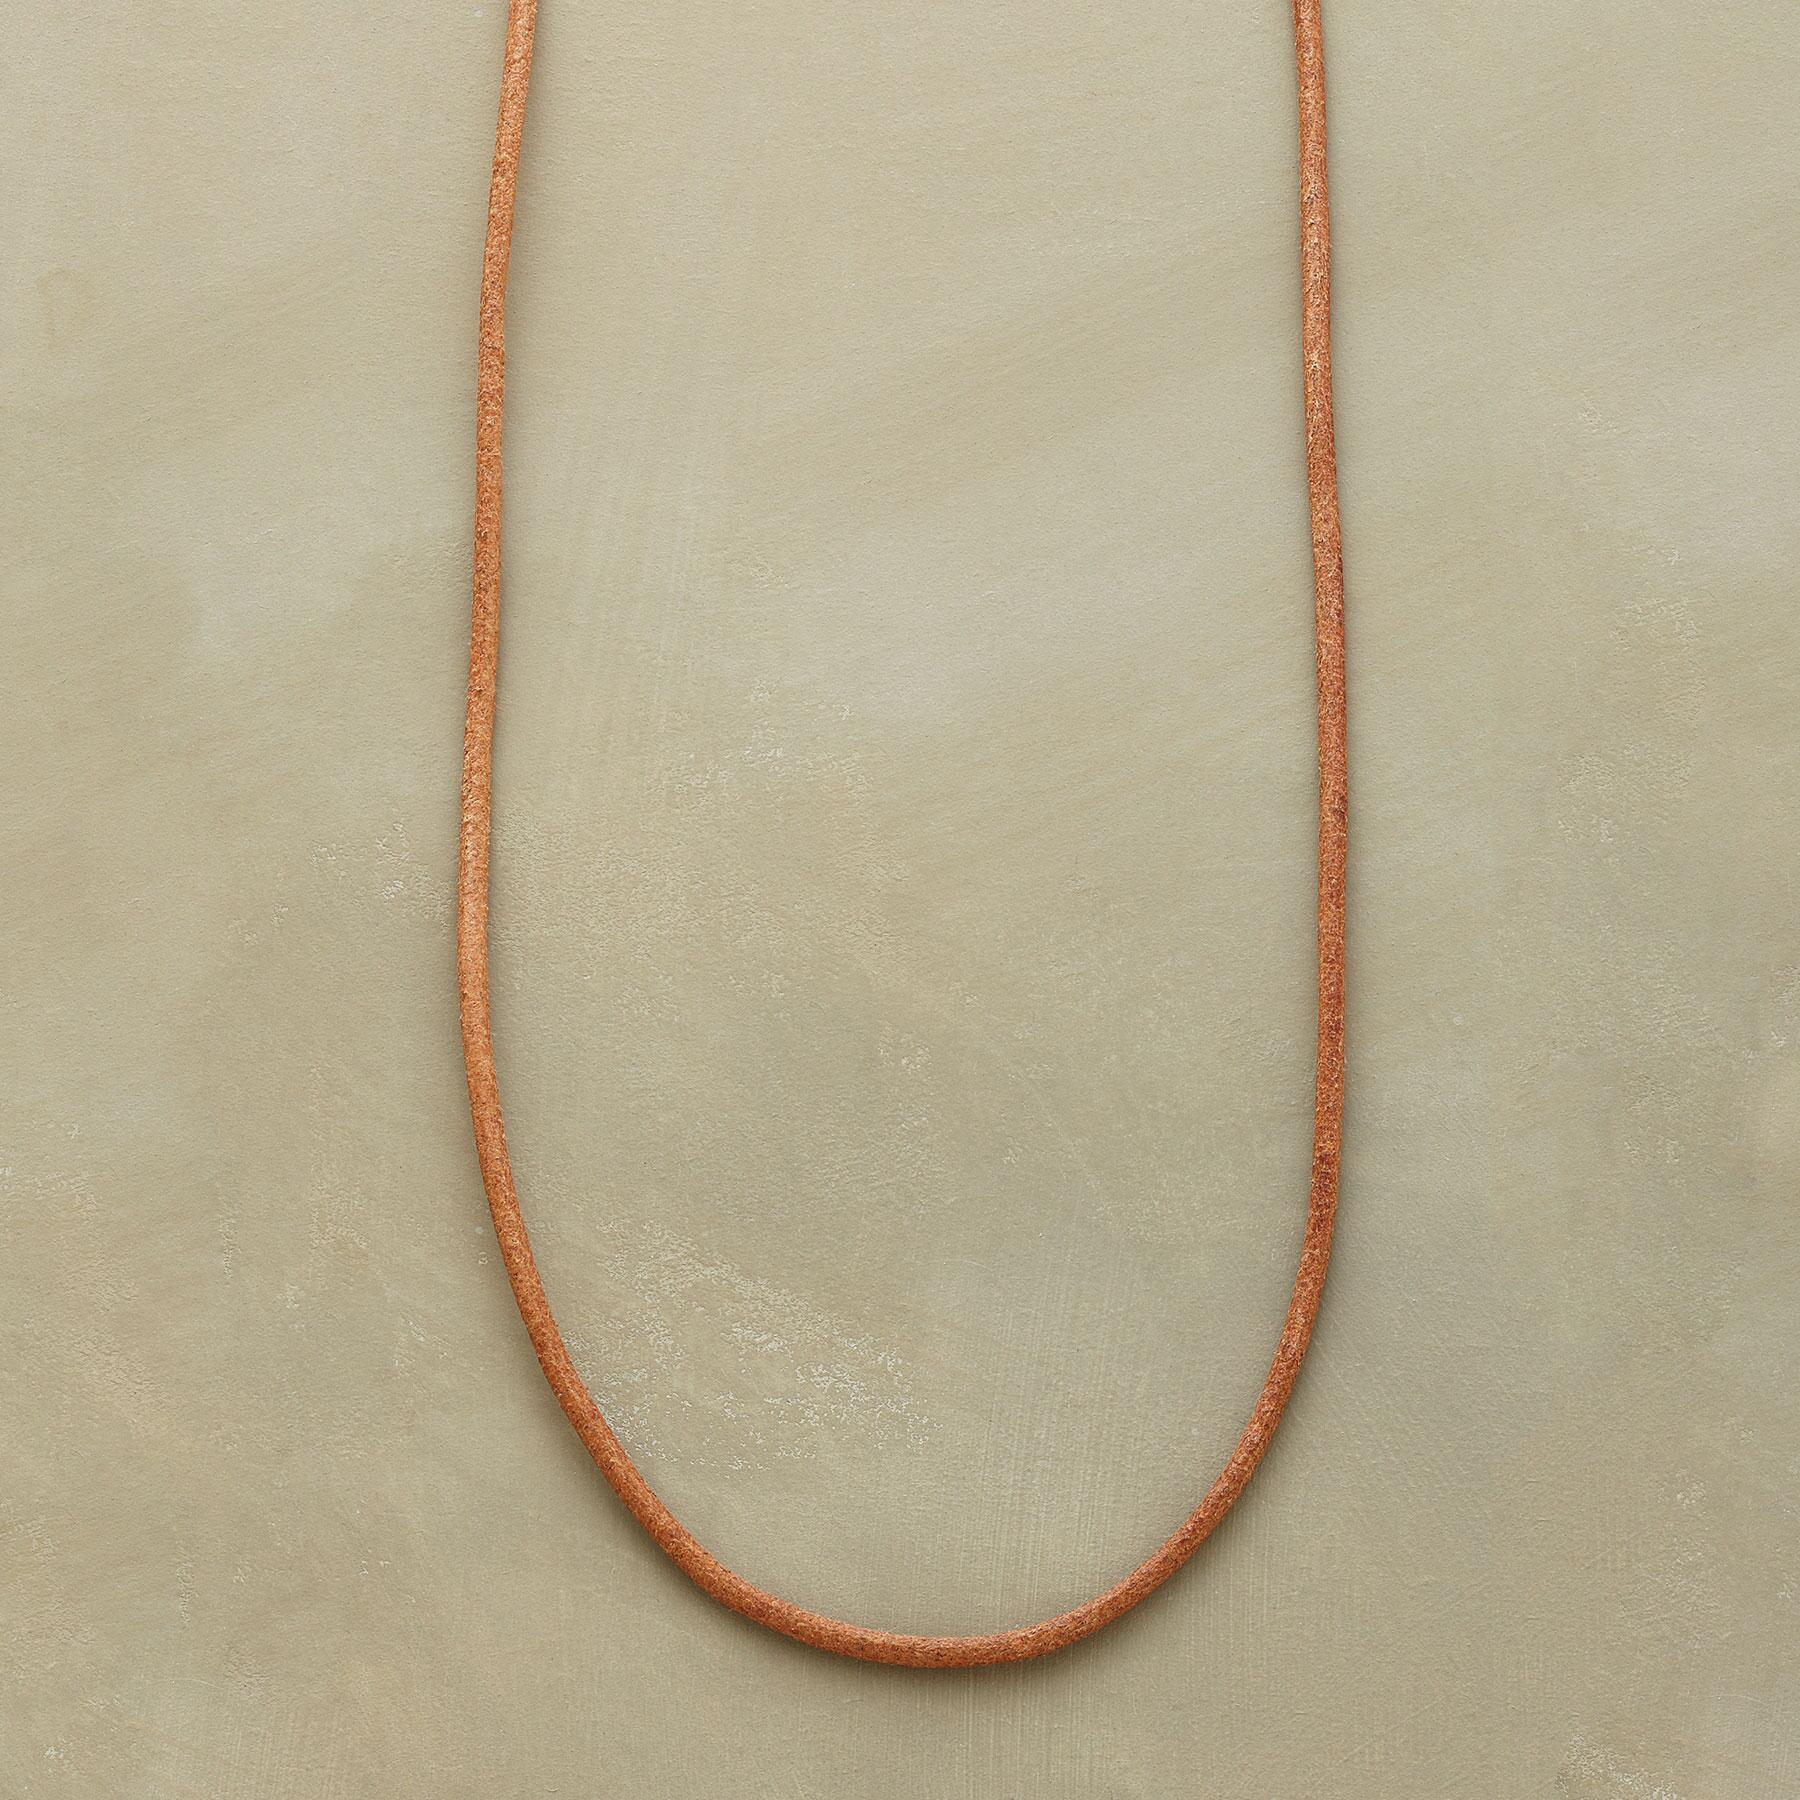 LEATHER CHARMSTARTER NECKLACE: View 1